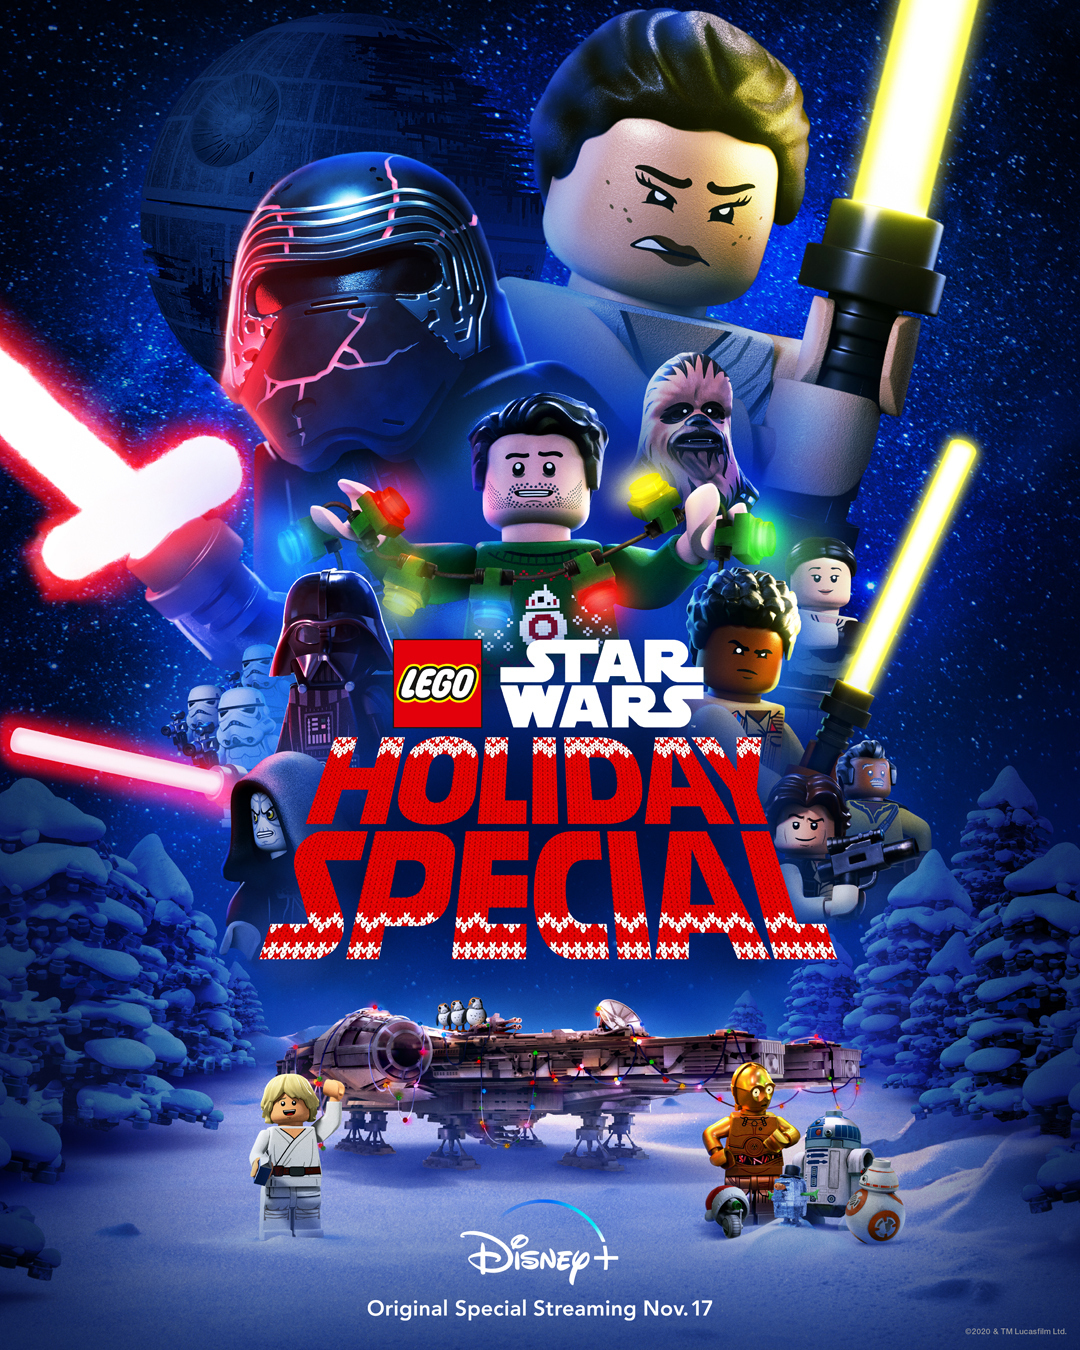 The LEGO Star Wars Holiday Special | Wookieepedia | Fandom